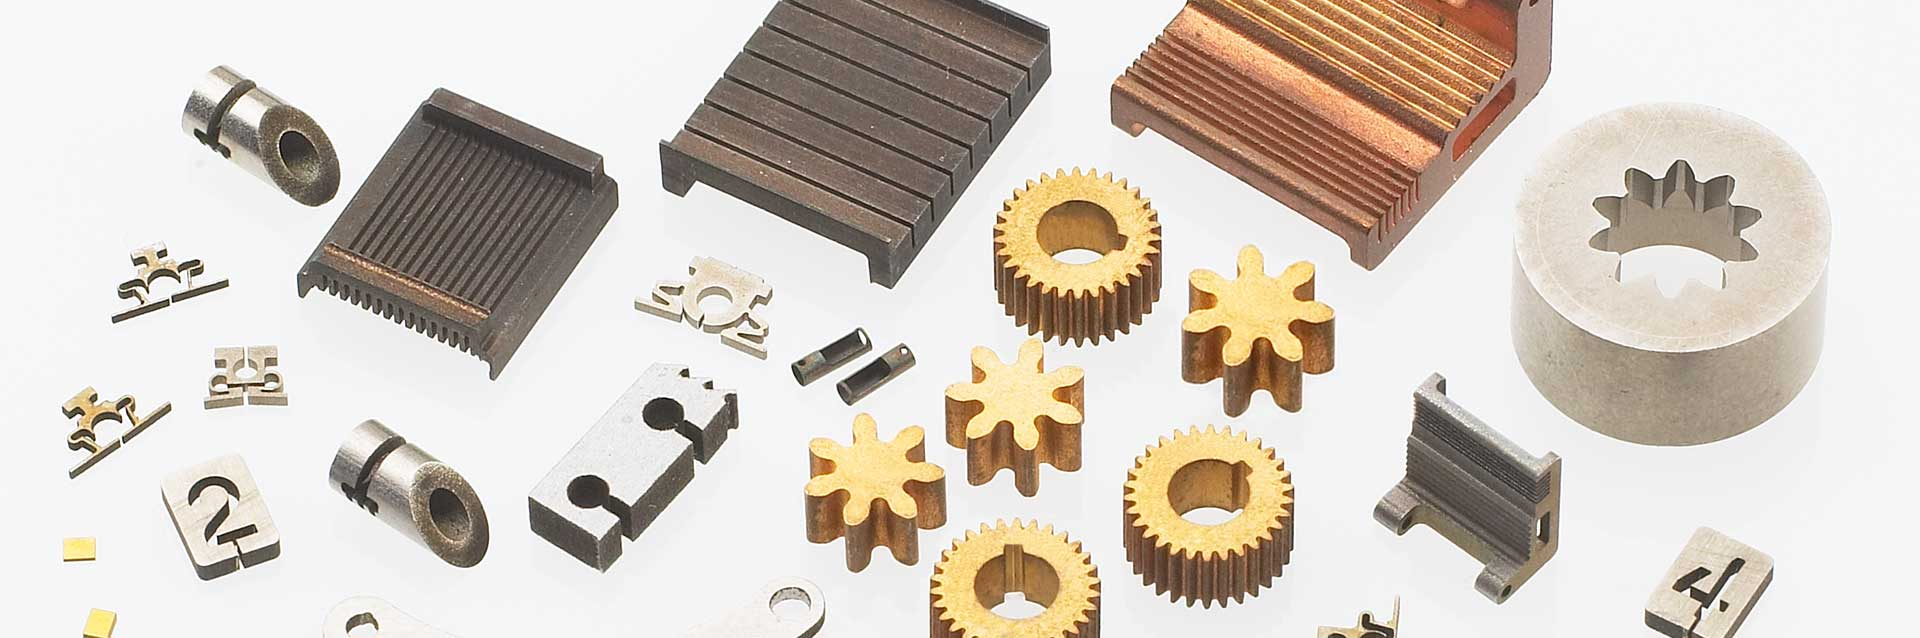 precision machine metal parts manufactured by XACT Wire EDM